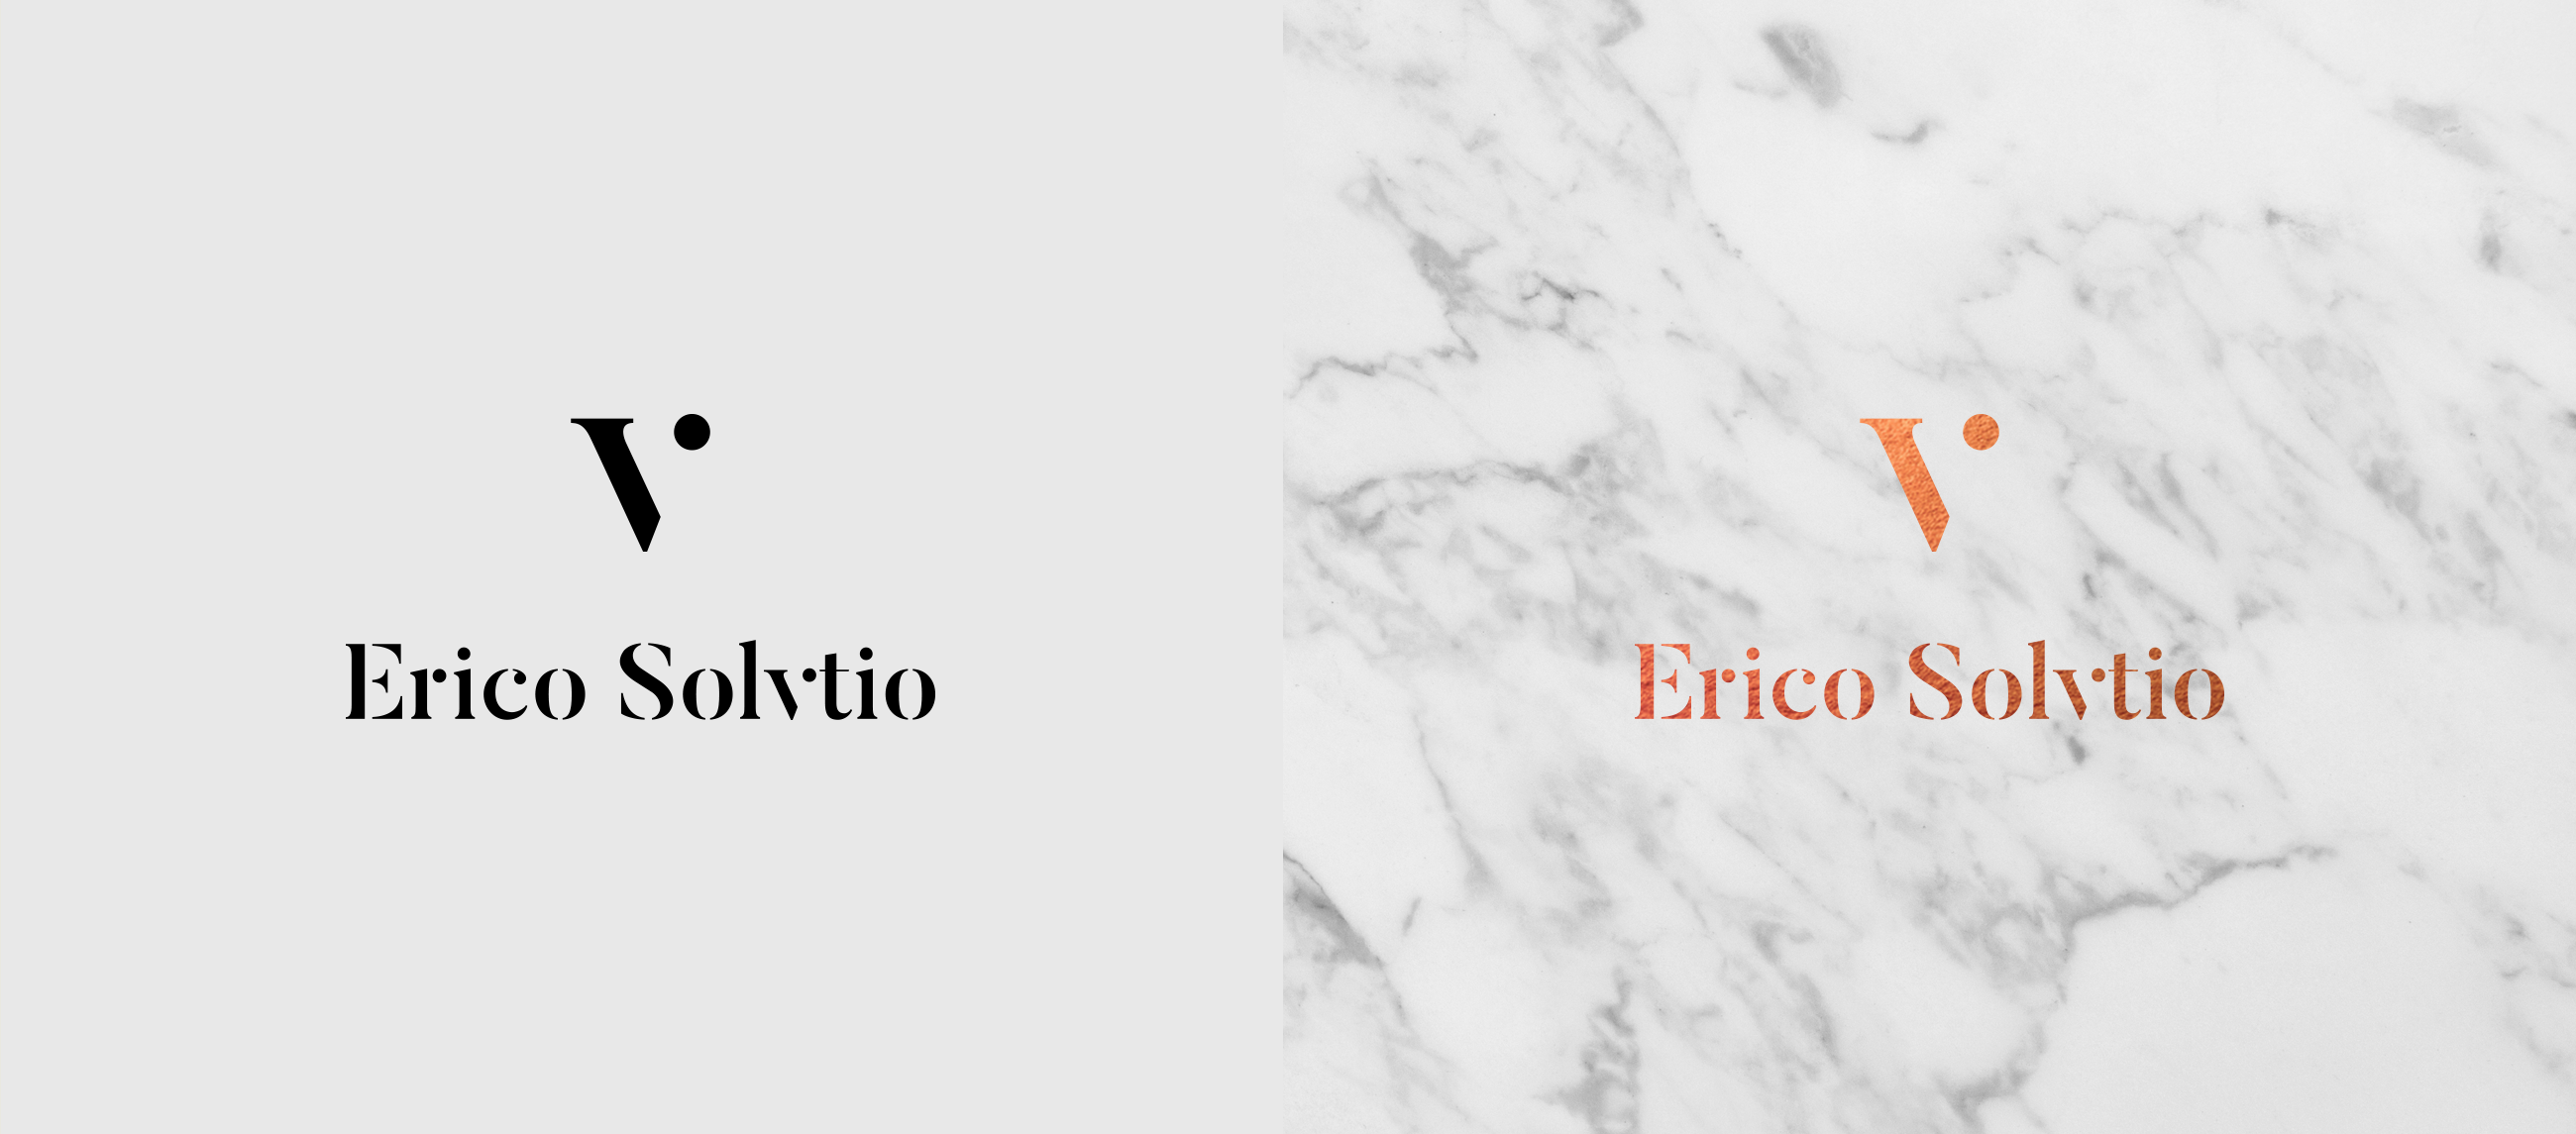 Erico Solvtio Branding by The Woork Co